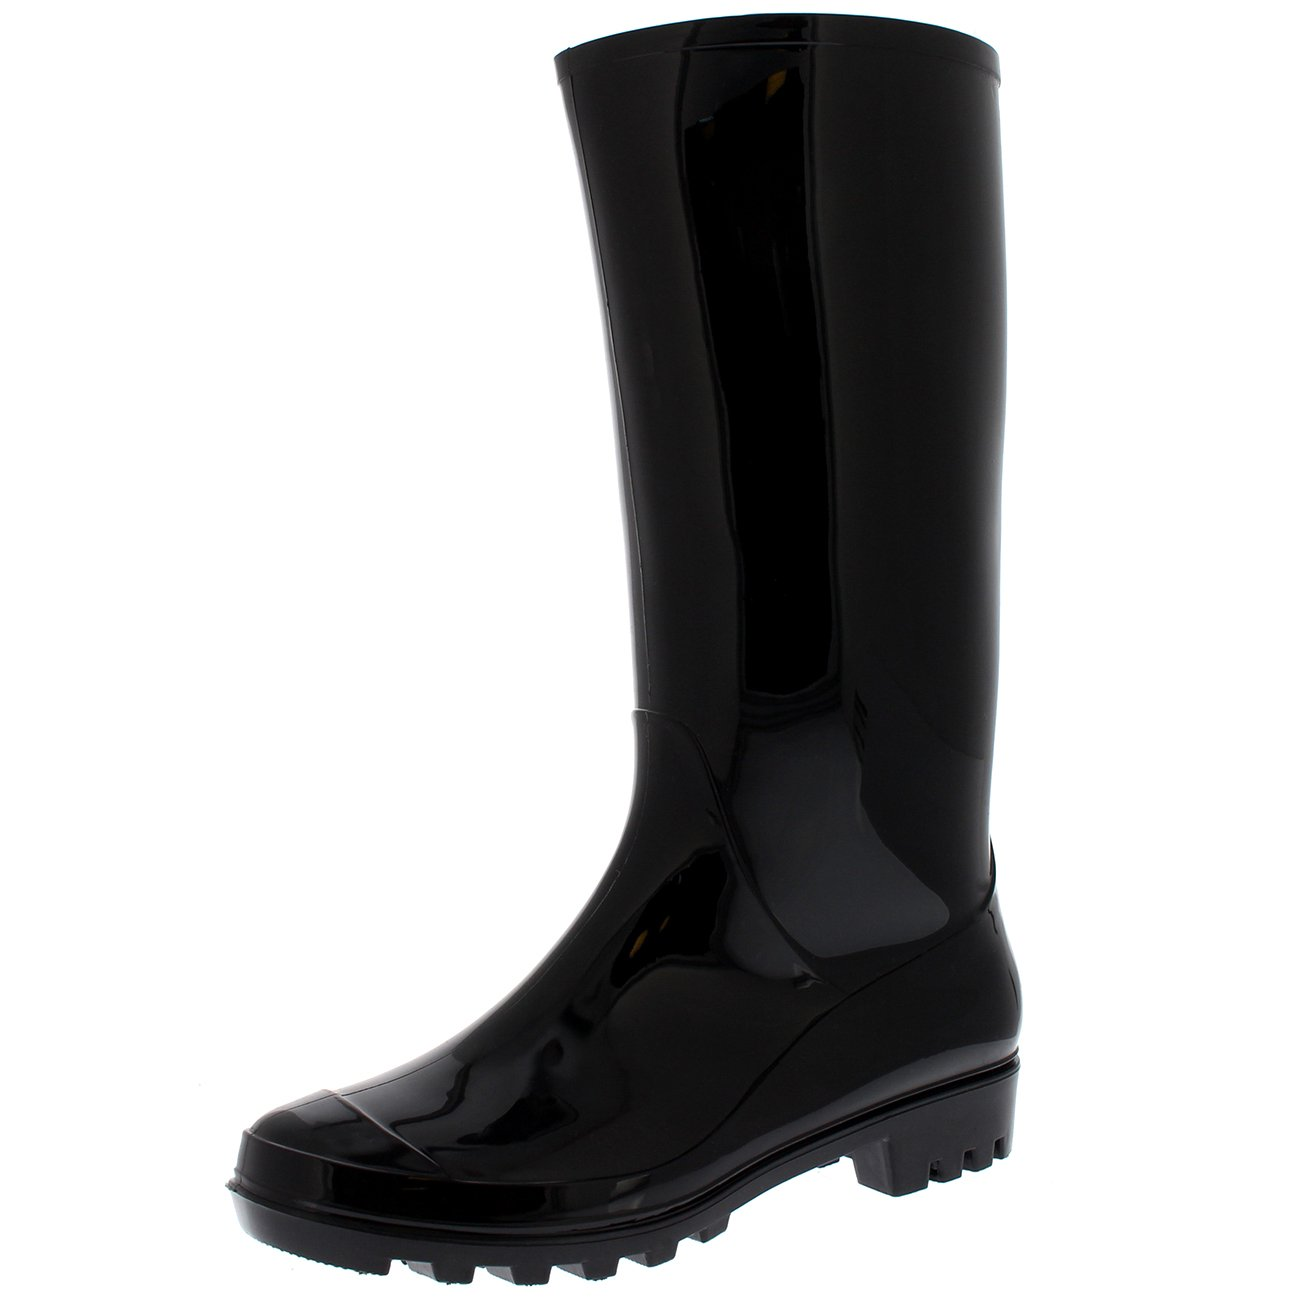 Womens Original Tall Winter Snow Wellingtons Muck Waterproof Boots - Black Gloss - US8/EU39 - BL0283